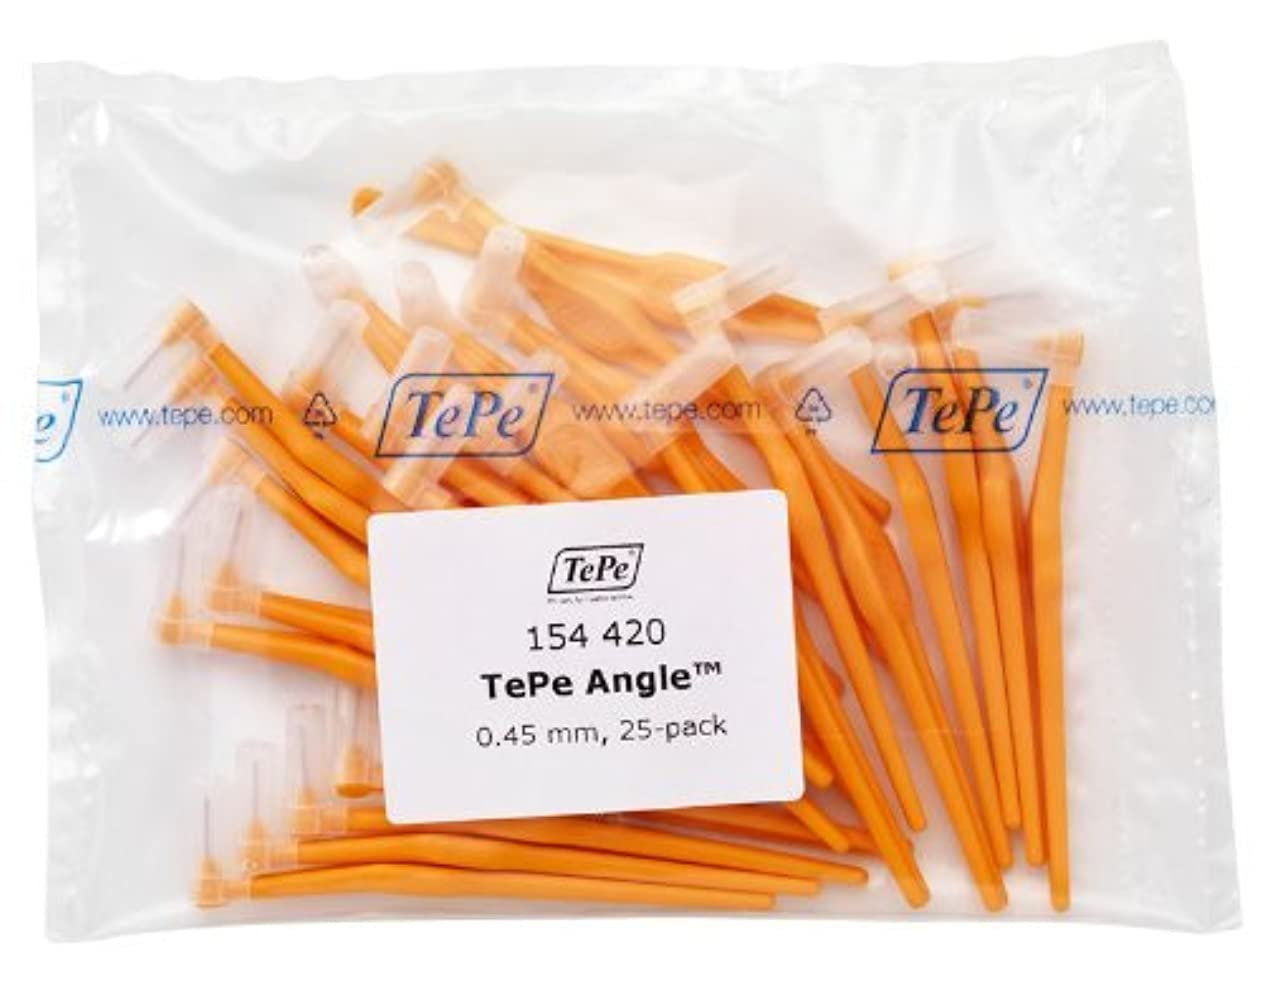 救いフレームワーク幸福TePe Interdental Brush Angle - Orange 0.45mm 25 Pack by TePe Munhygienprodukter AB, Sweden [並行輸入品]